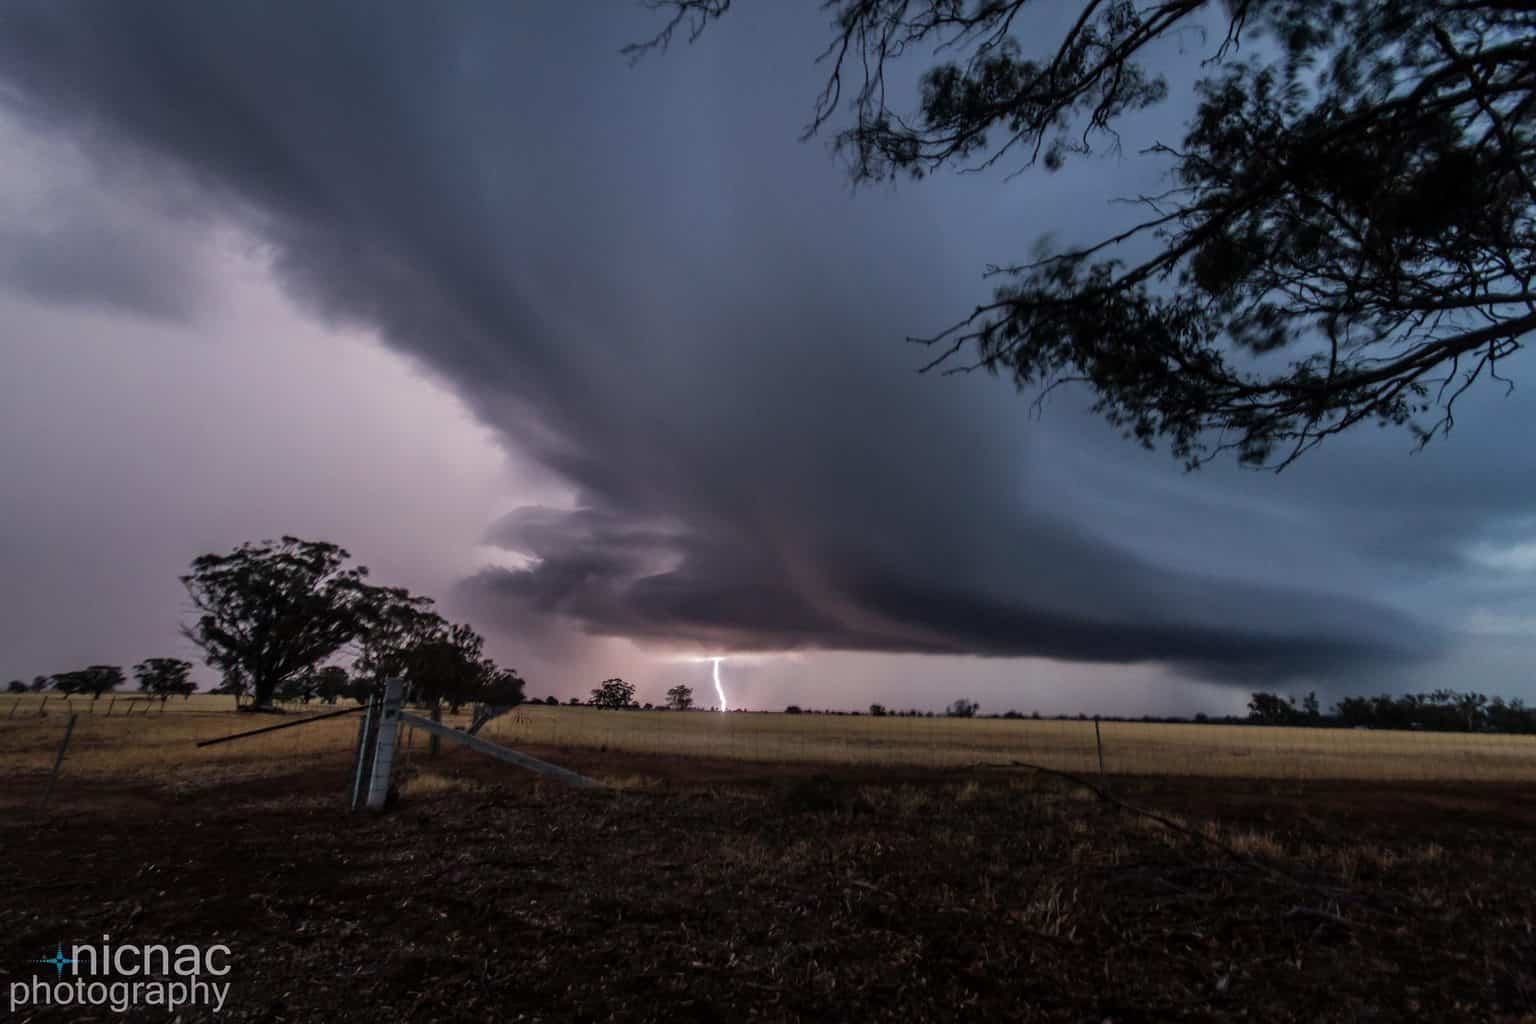 This was taken Friday 22nd January just north of Kurting, Victoria, Australia around 8.45pm. This storm was coming right at us and fast hence the blur.. but hopefully you get the idea!